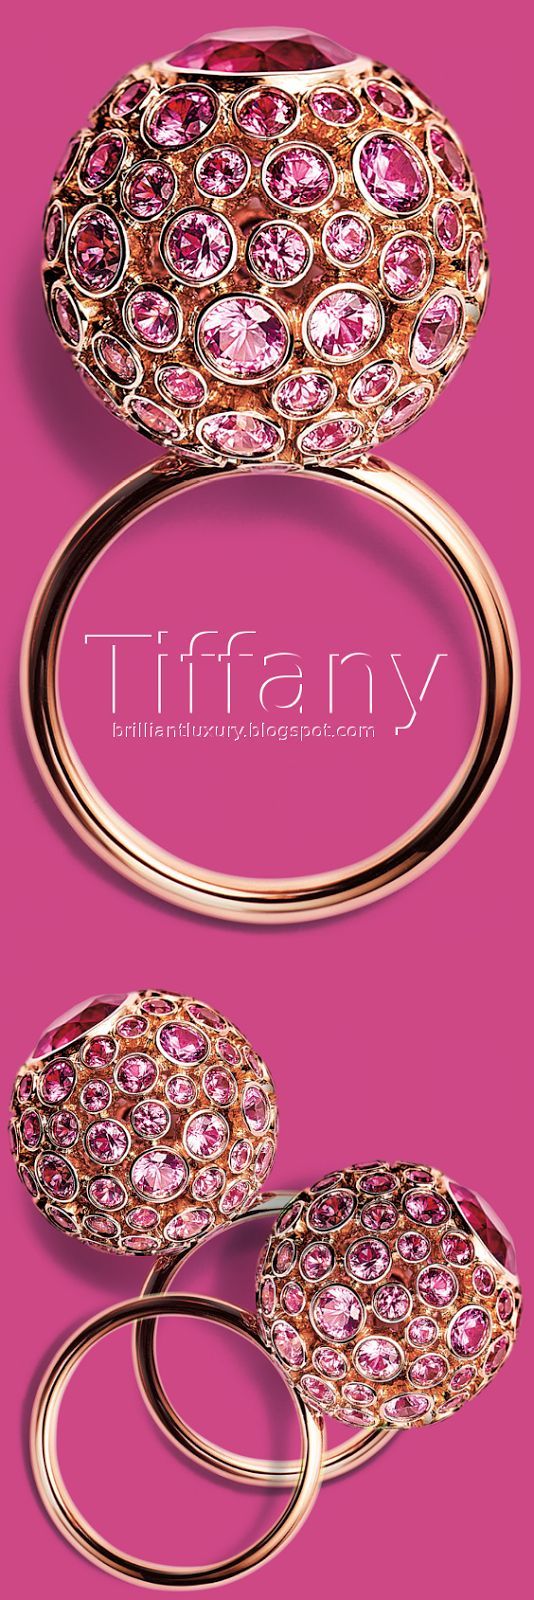 The 375 best Tiffany & Co images on Pinterest | High jewelry, Yellow ...